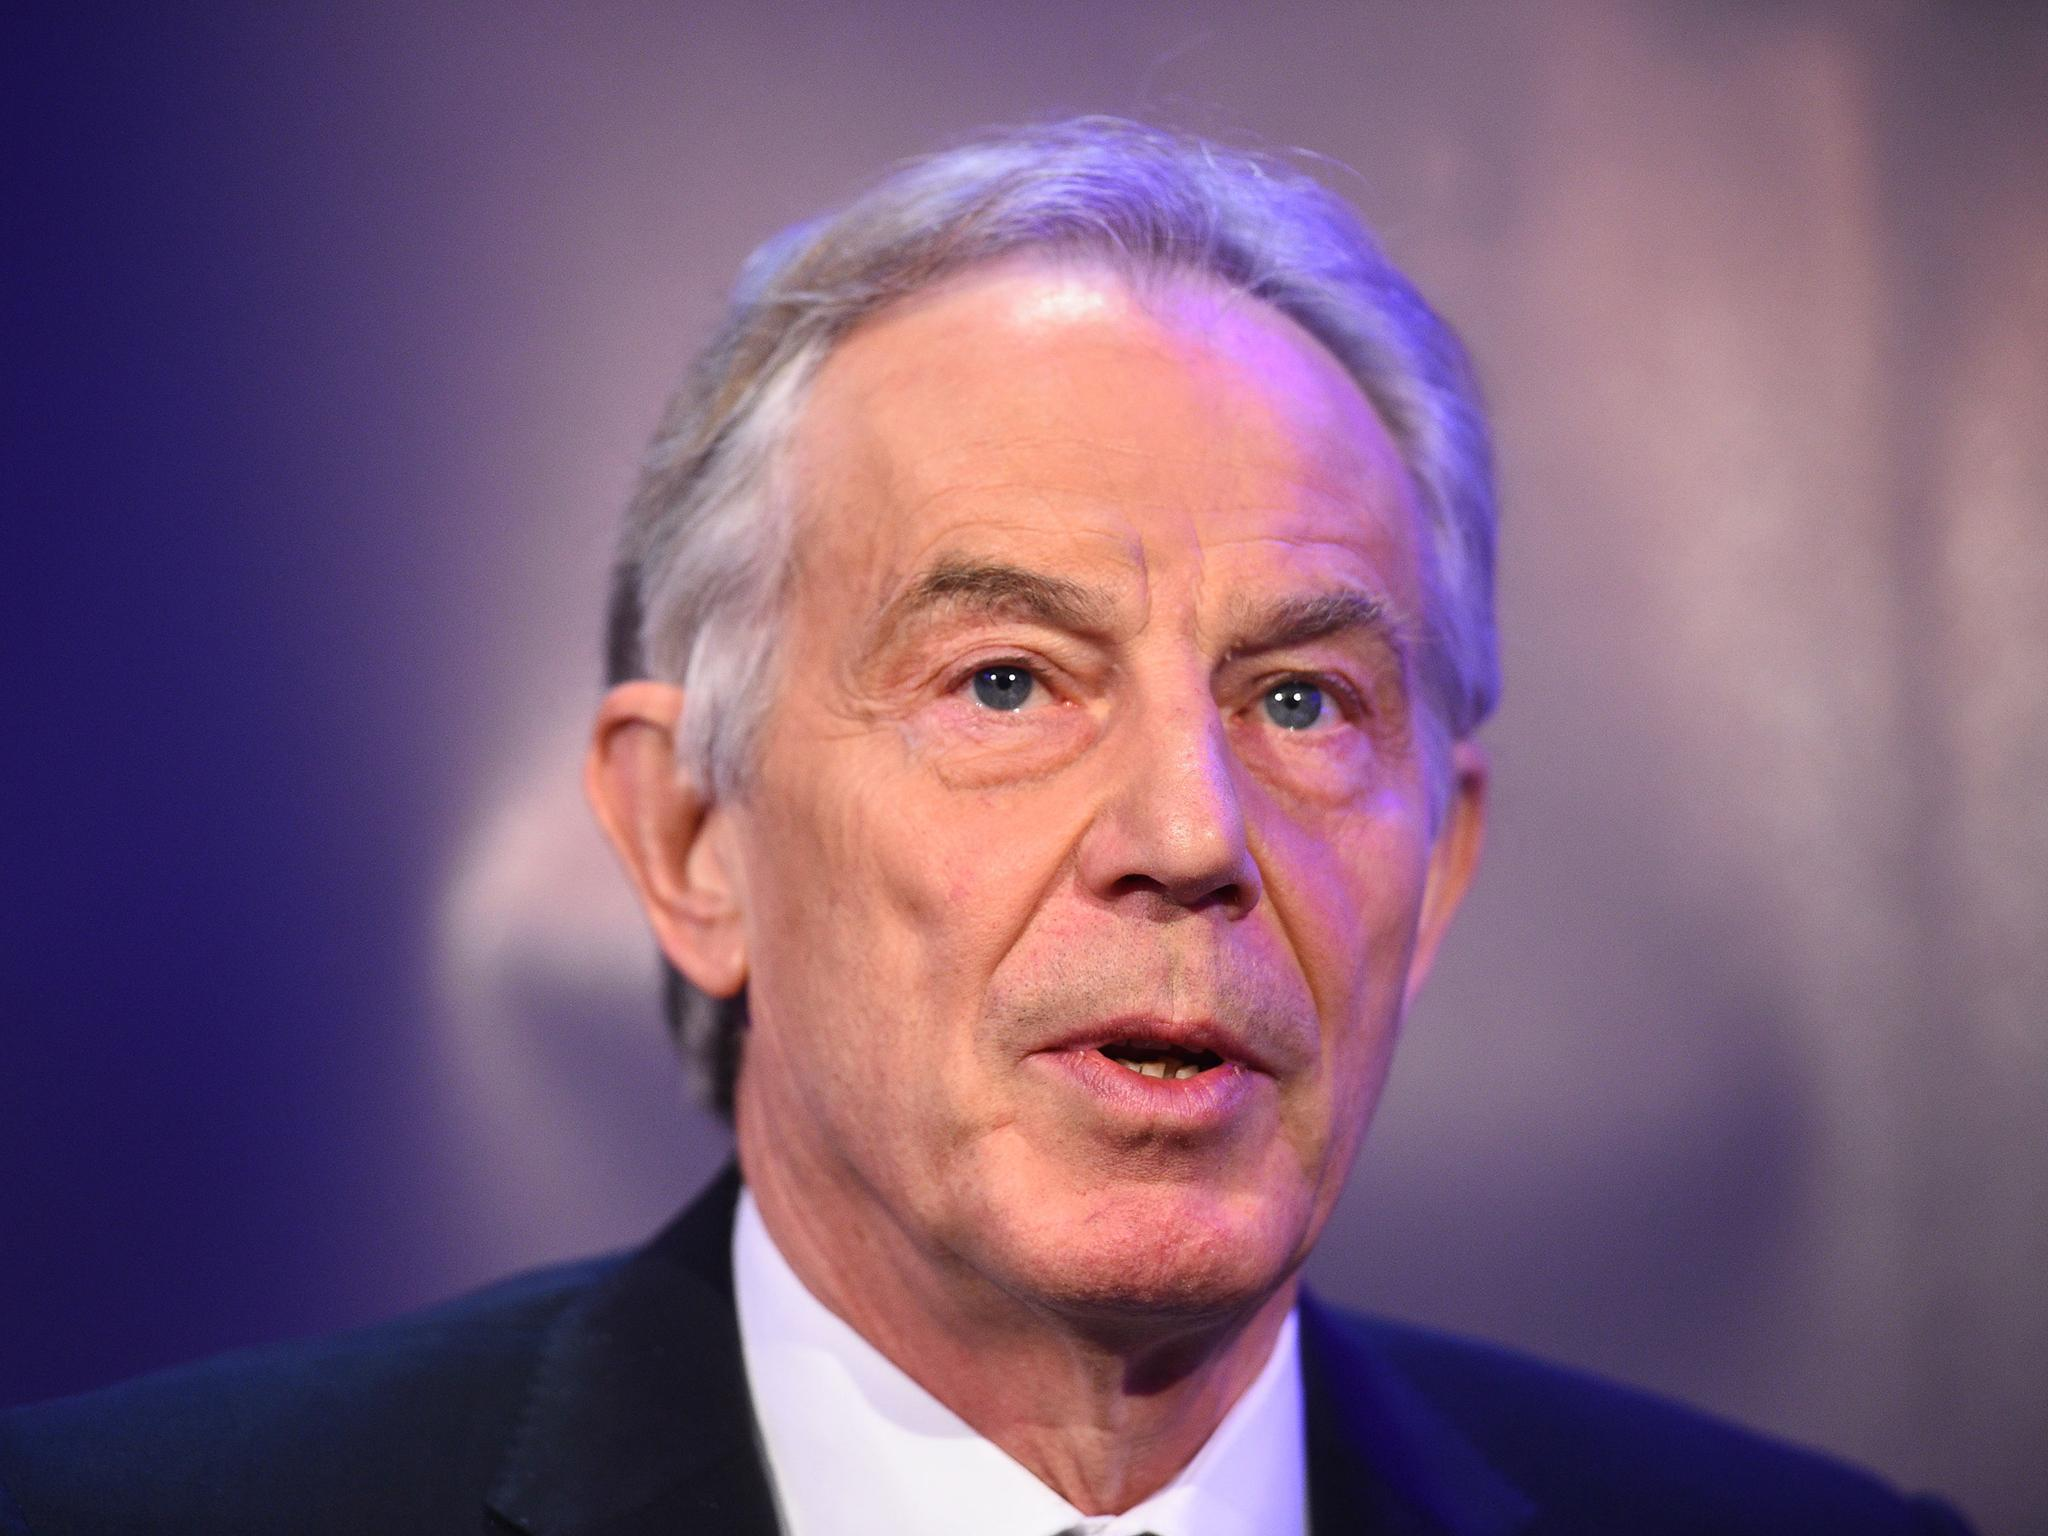 Brexit: Tony Blair urges Theresa May to prepare for second referendum as she struggles to save deal